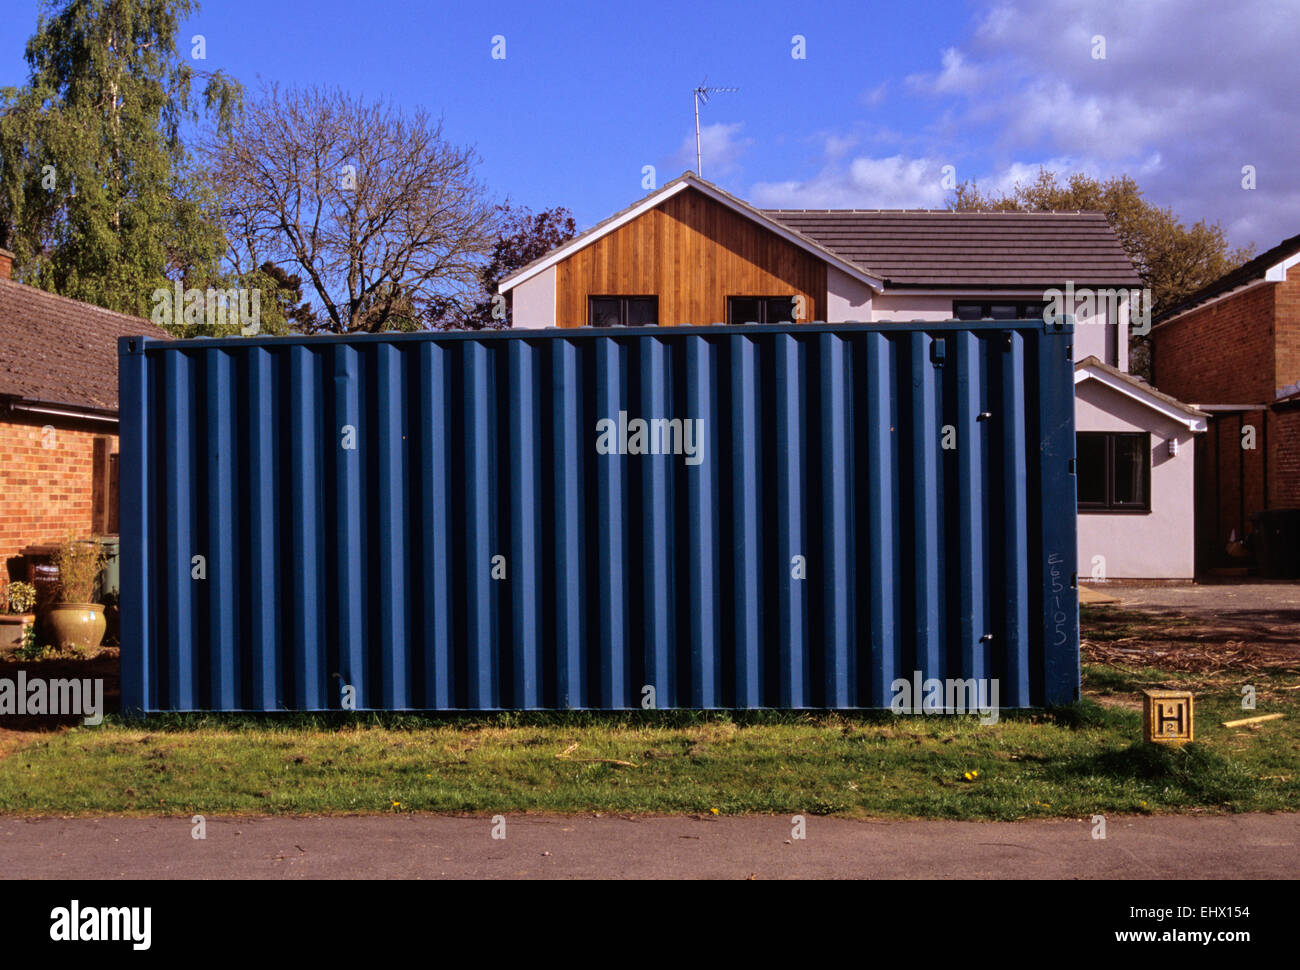 Shipping Container Used A Garden Shed In Front Garden Of House In  Henley On Thames UK